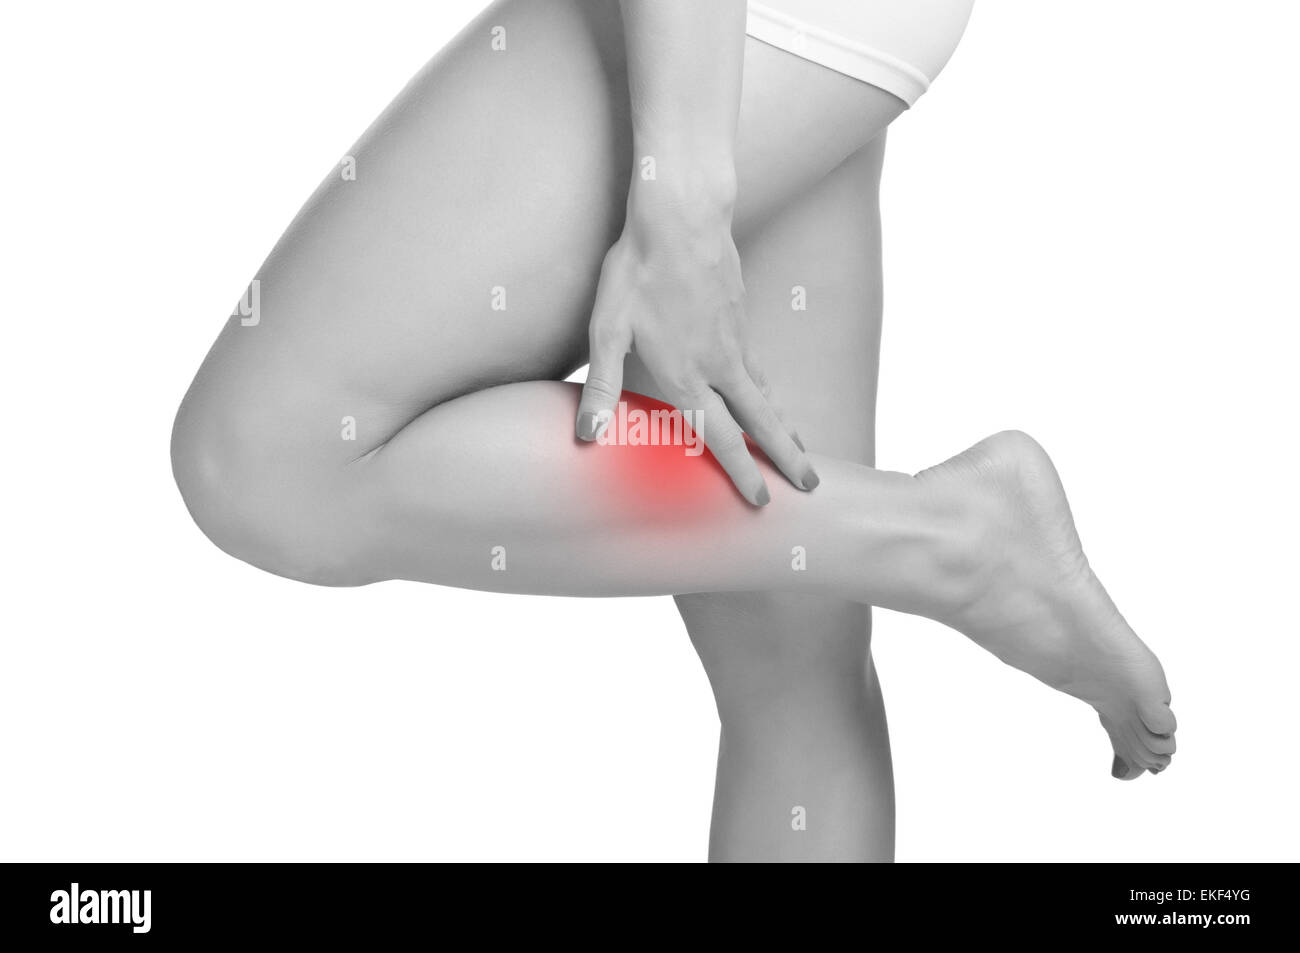 Pain in the Leg - Stock Image